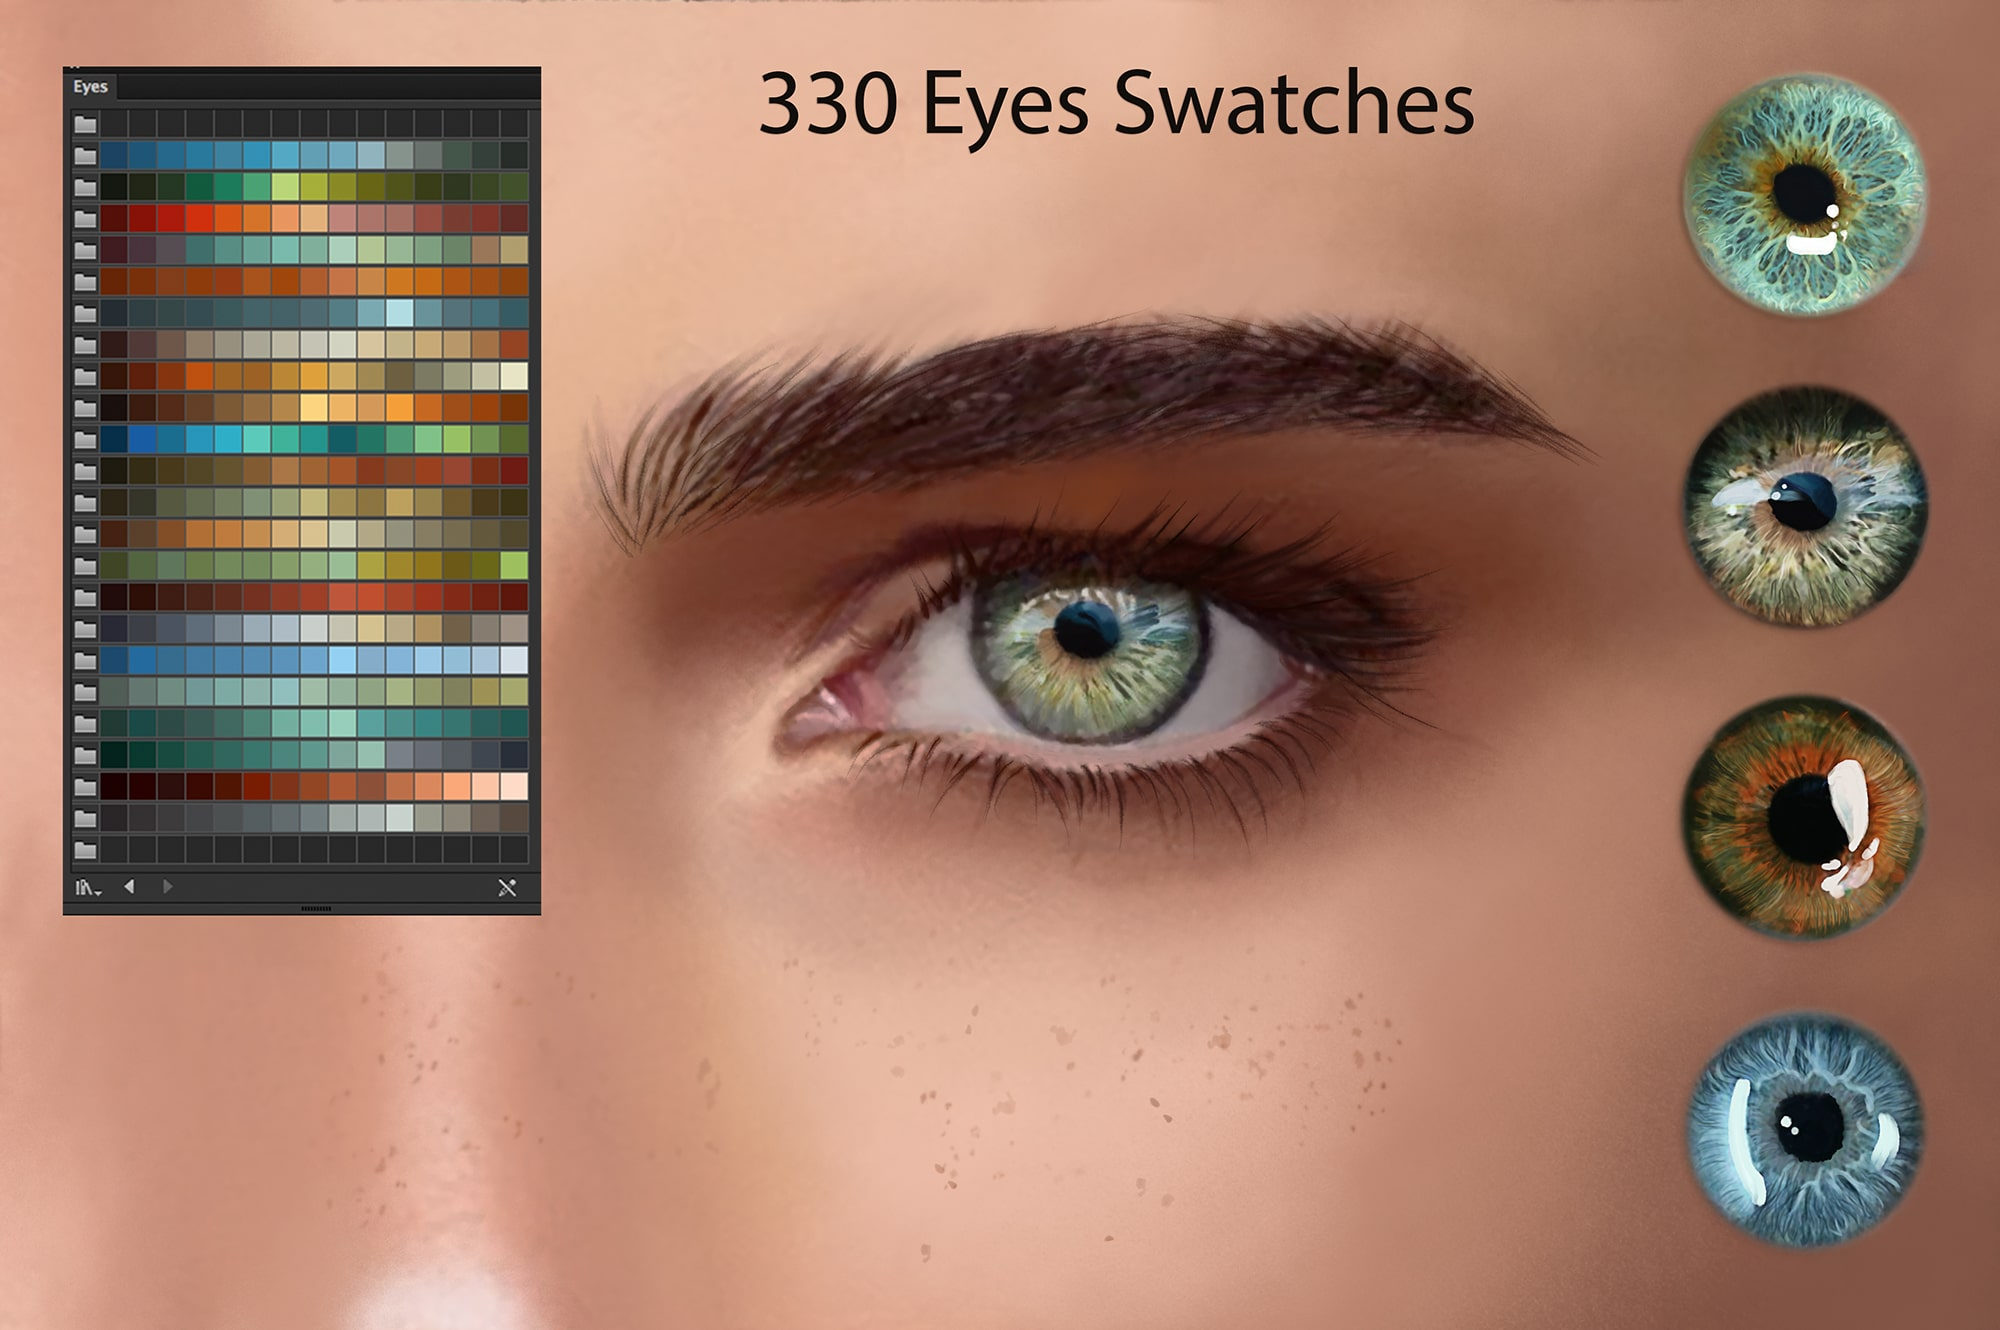 6924 Illustrator Swatches and Digital Painting - 8 min